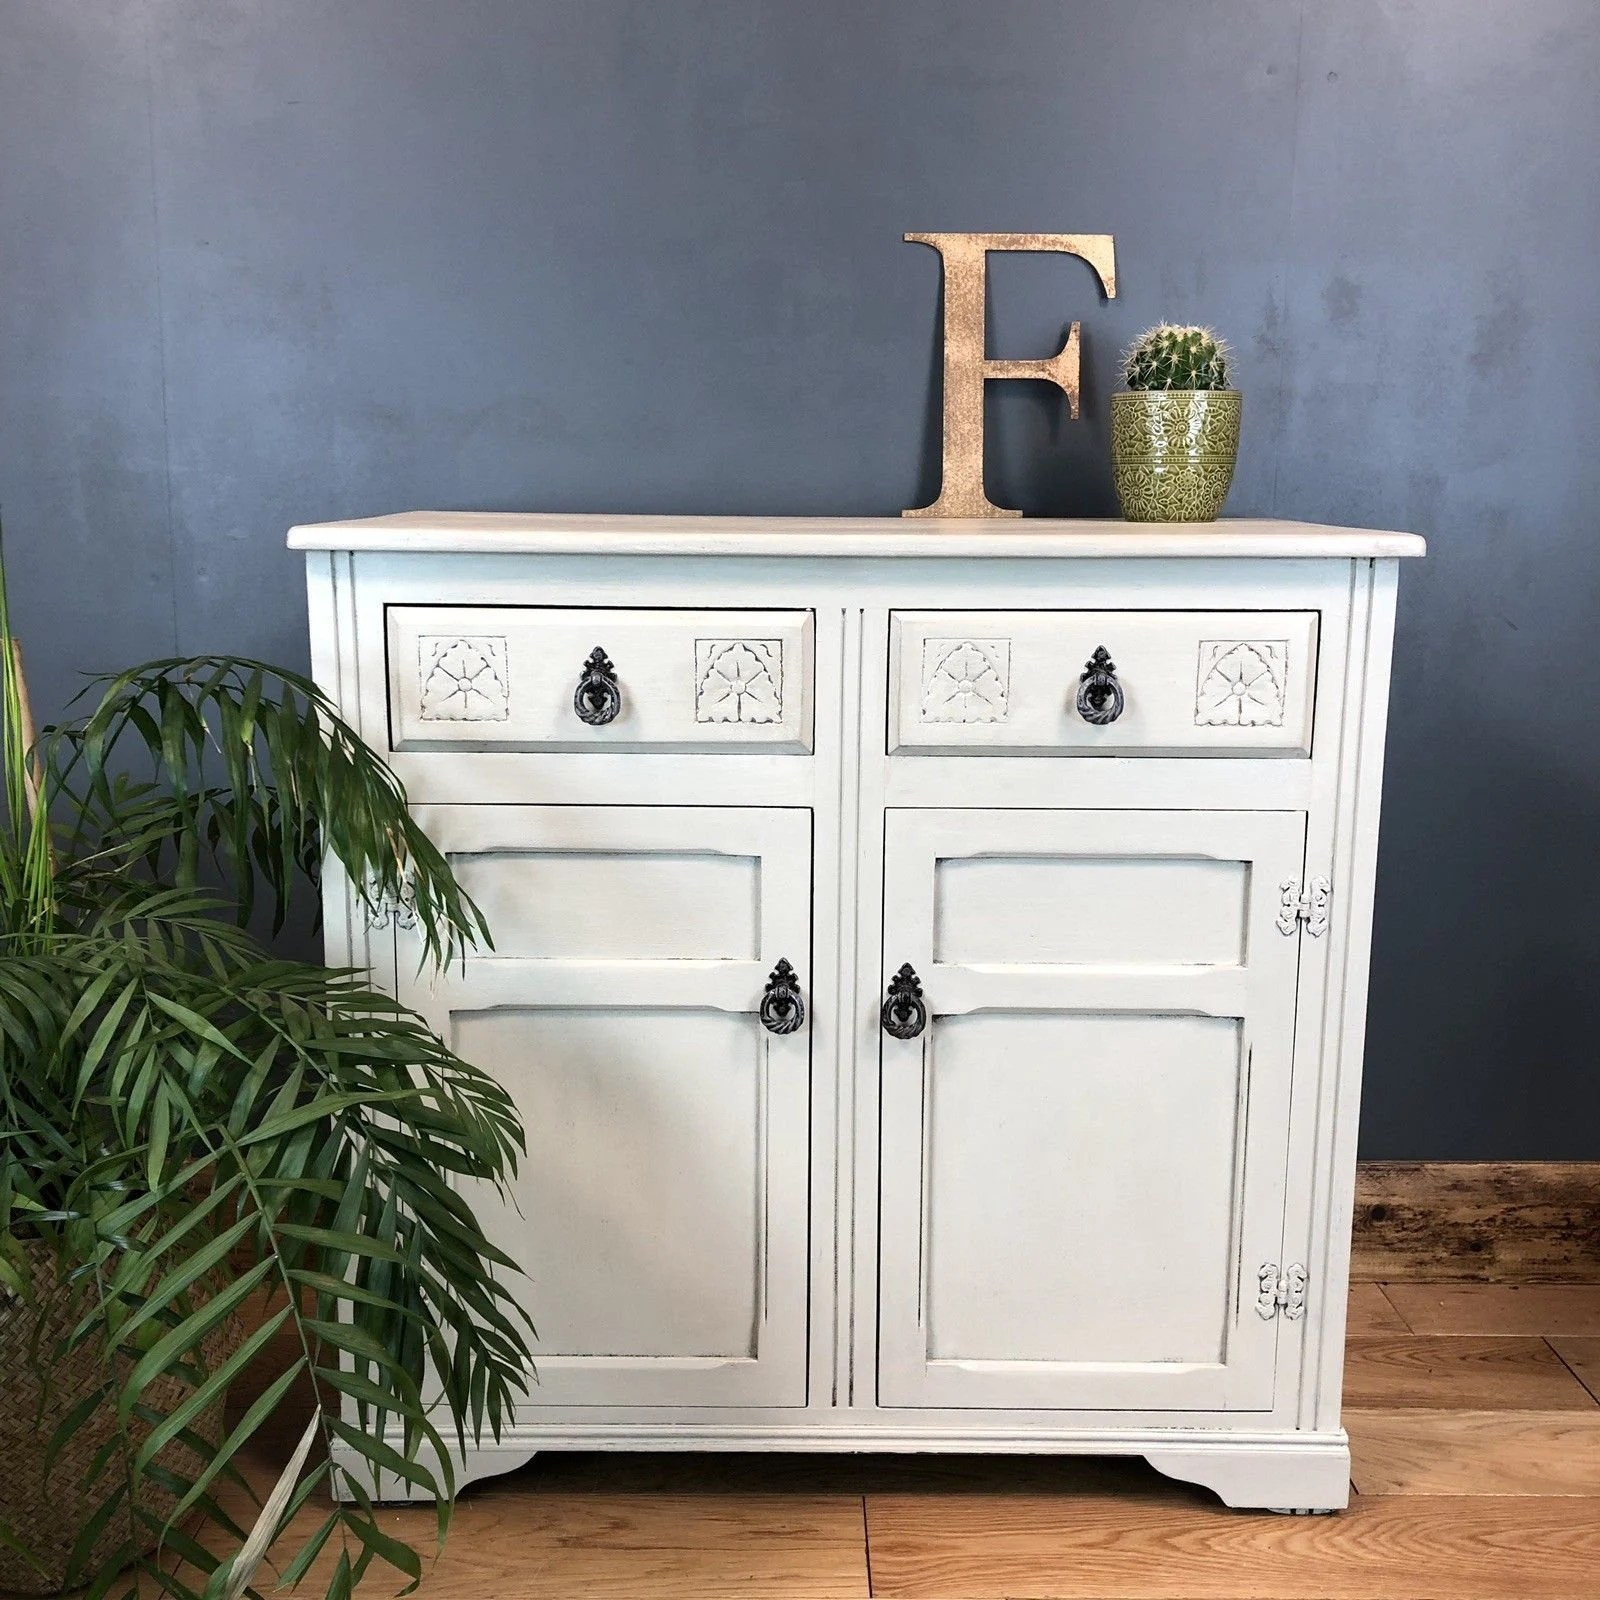 Sideboard Shabby Chic Vintage Shabby Chic Sideboard Furniture Upcycled Rustic Painted